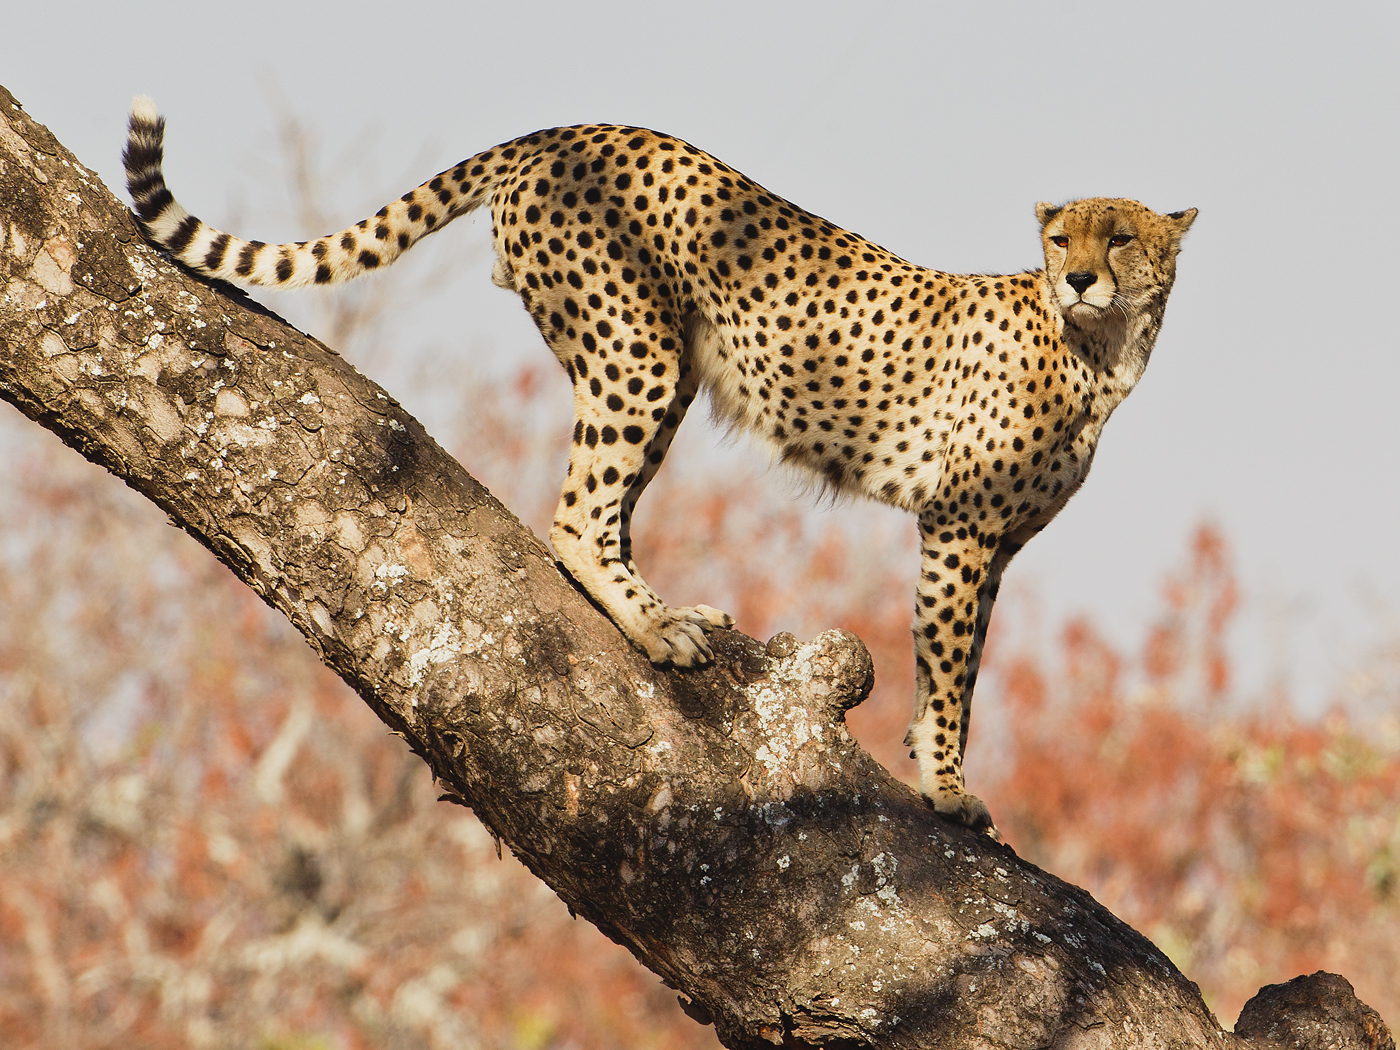 04_1314R1_119_052 C_CKPS_1_Cheetah on tree_Chris Millar.jpg